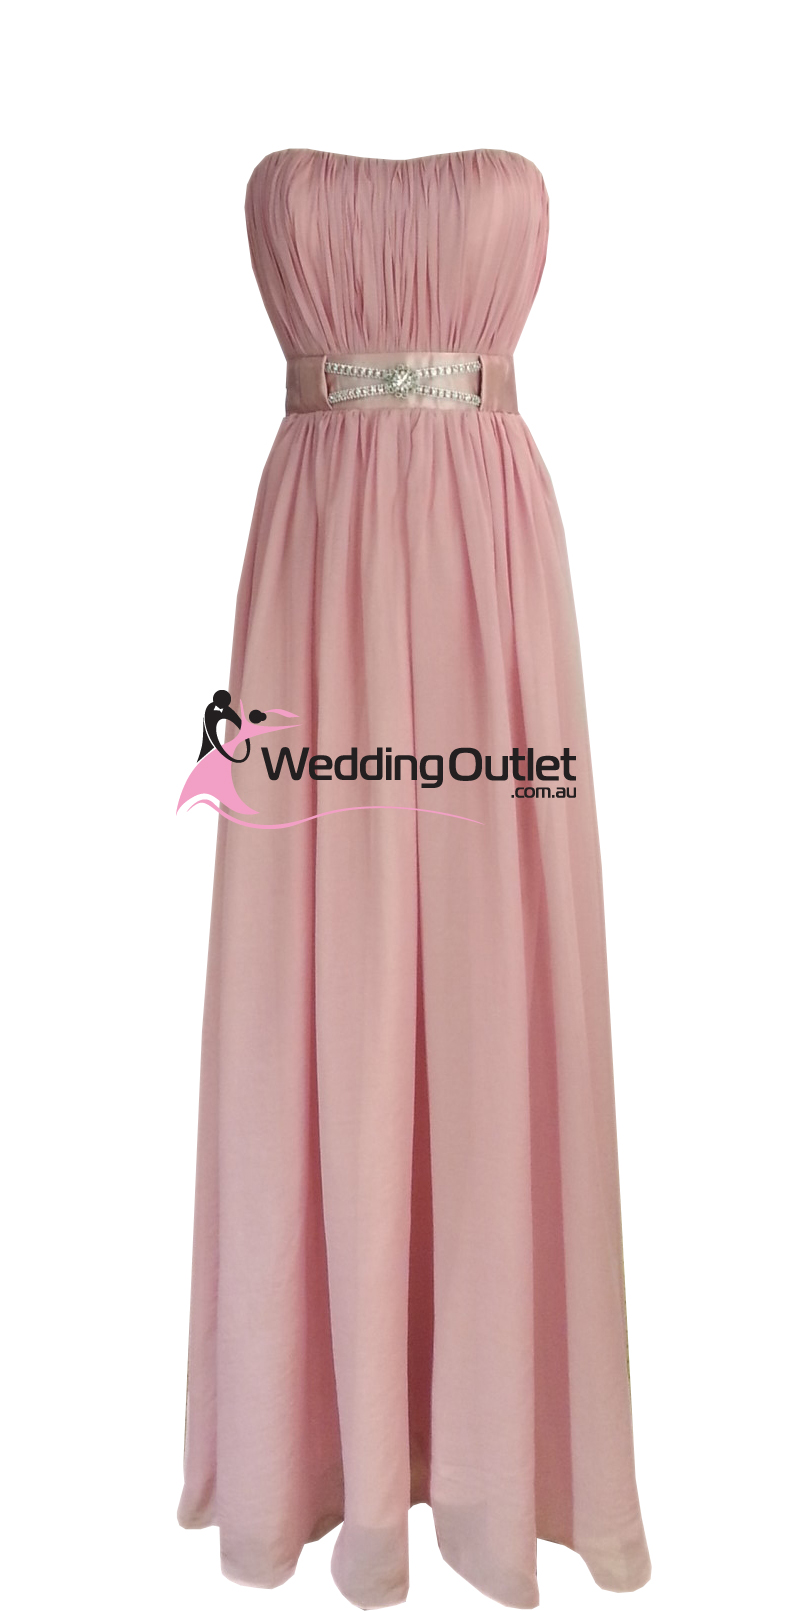 Dusty pink strapless bridesmaid dresses style v101 dusty pink strapless bridesmaid dresses style v101 ombrellifo Gallery